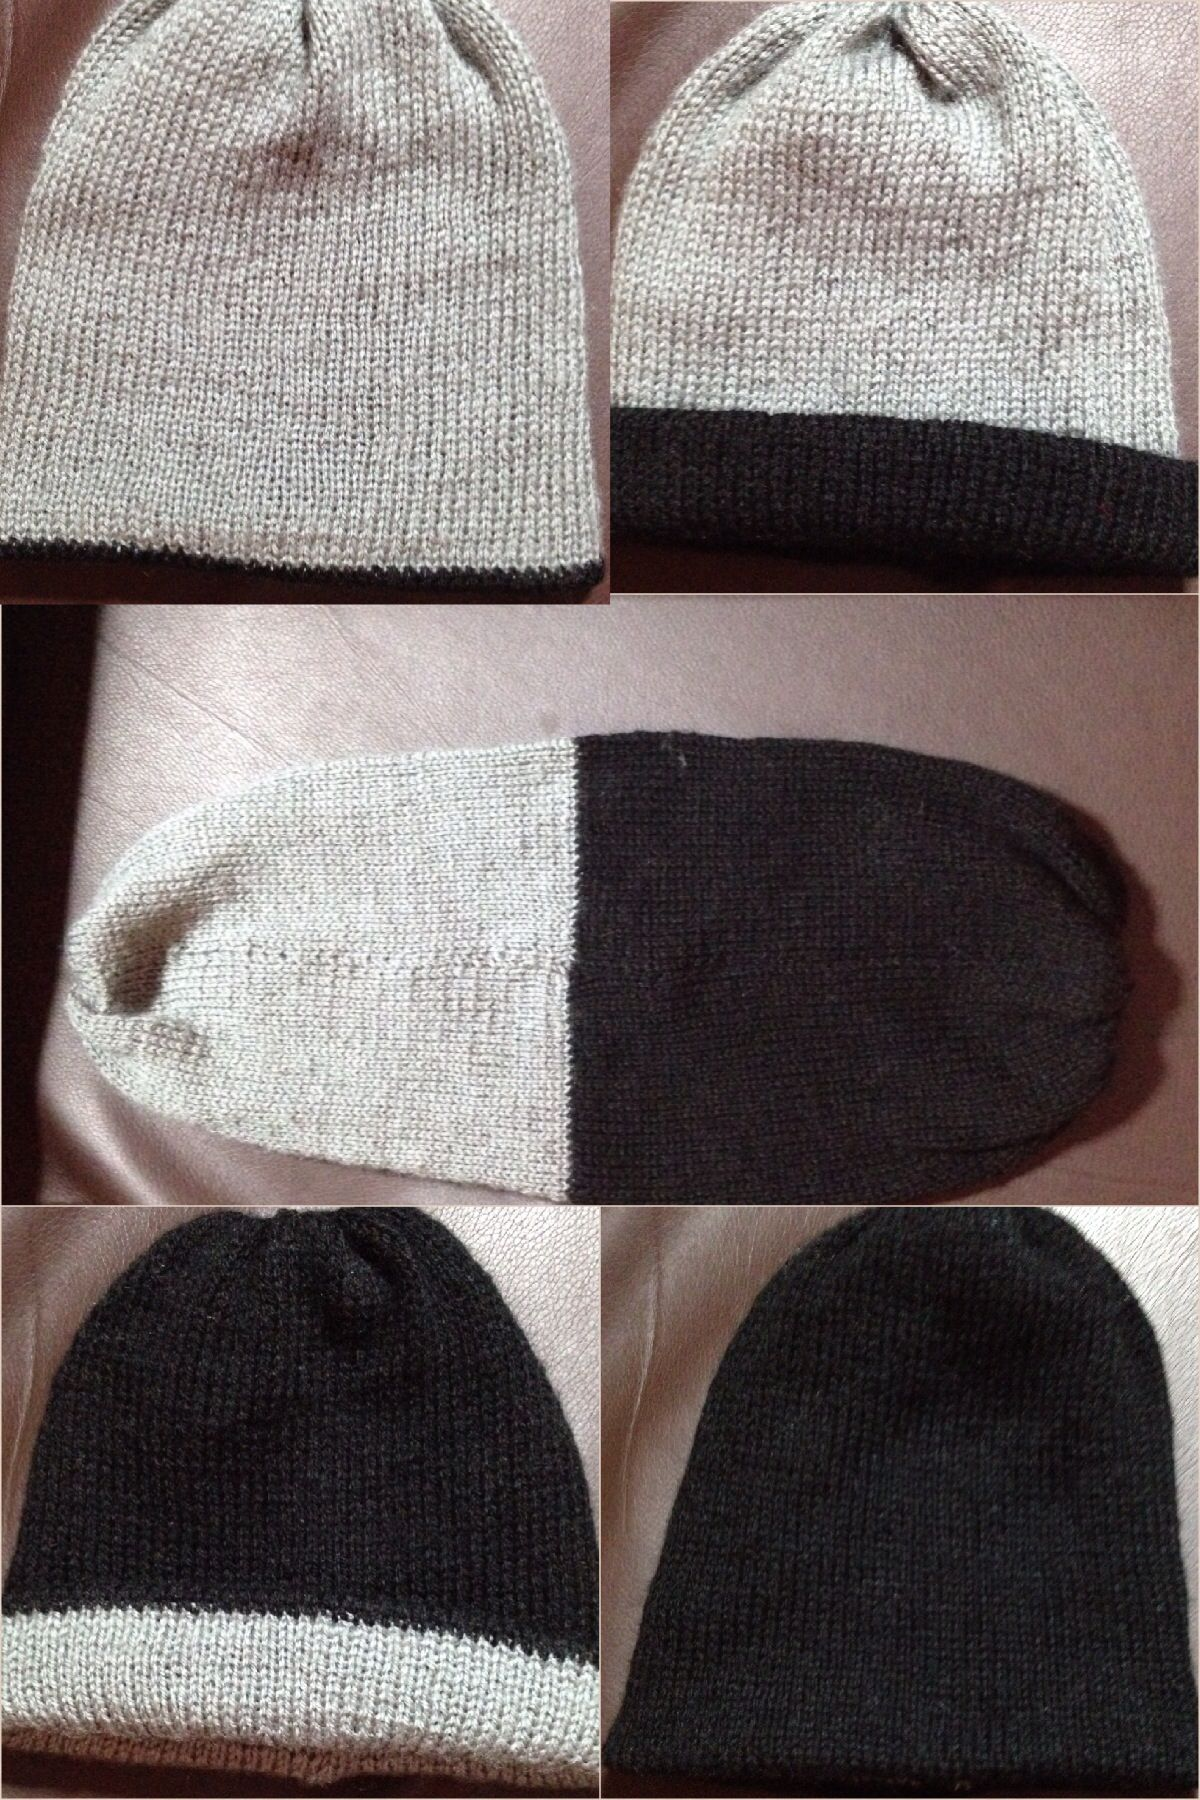 My 2 needle double layered 4 way Beanie hat 7b44a9009077